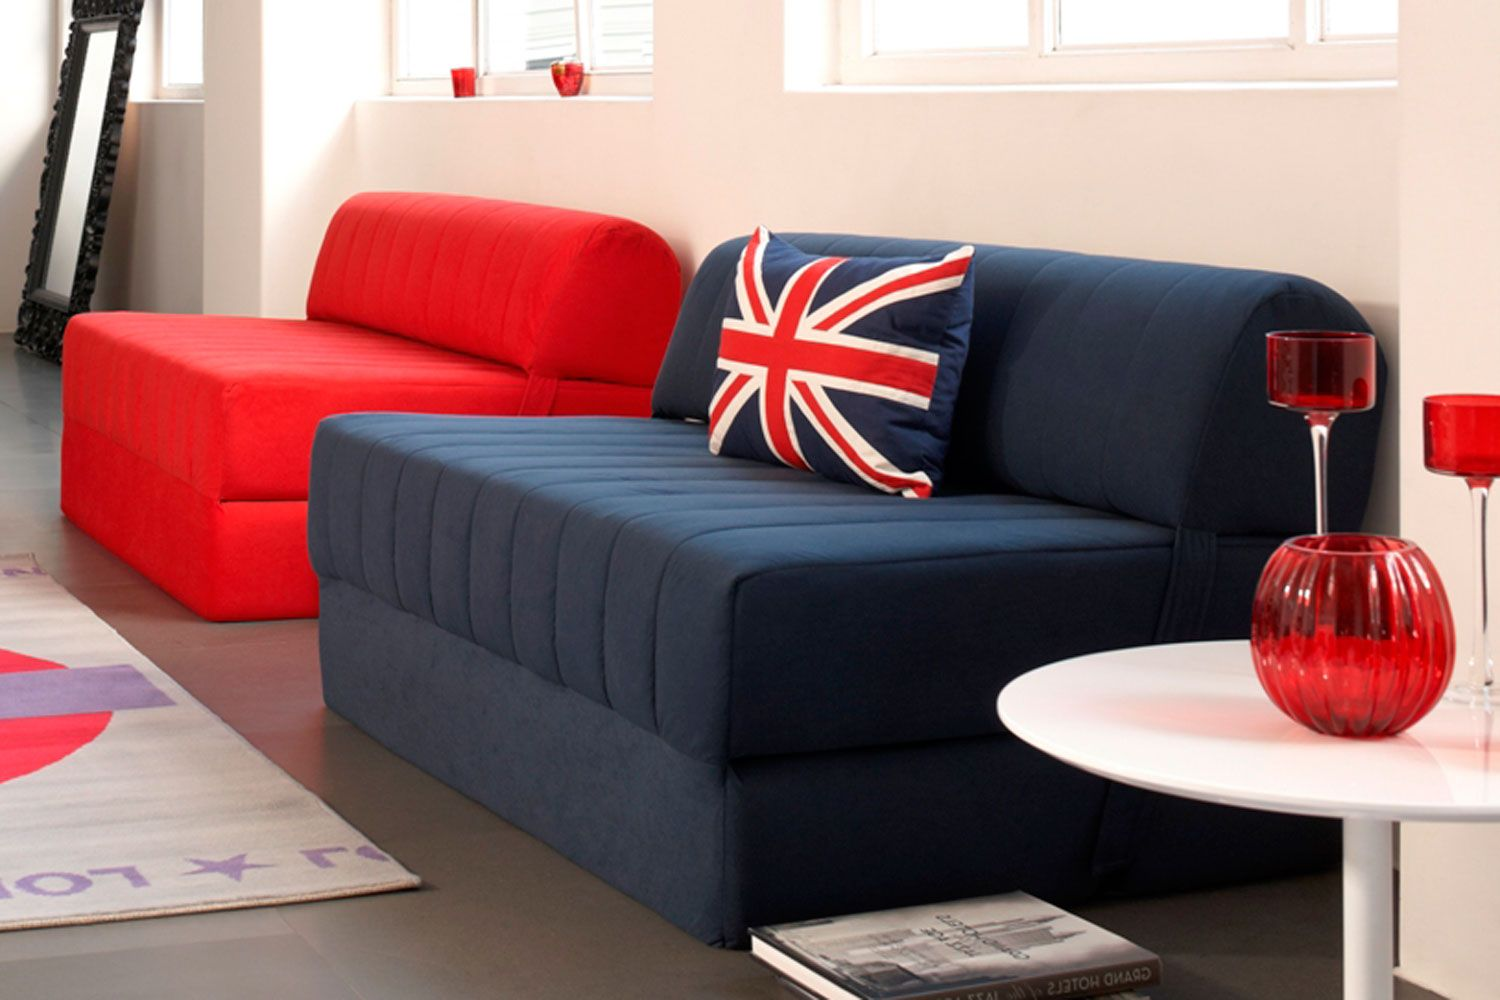 townhouse sofa bed 50 cheaper at para rubber for same thing